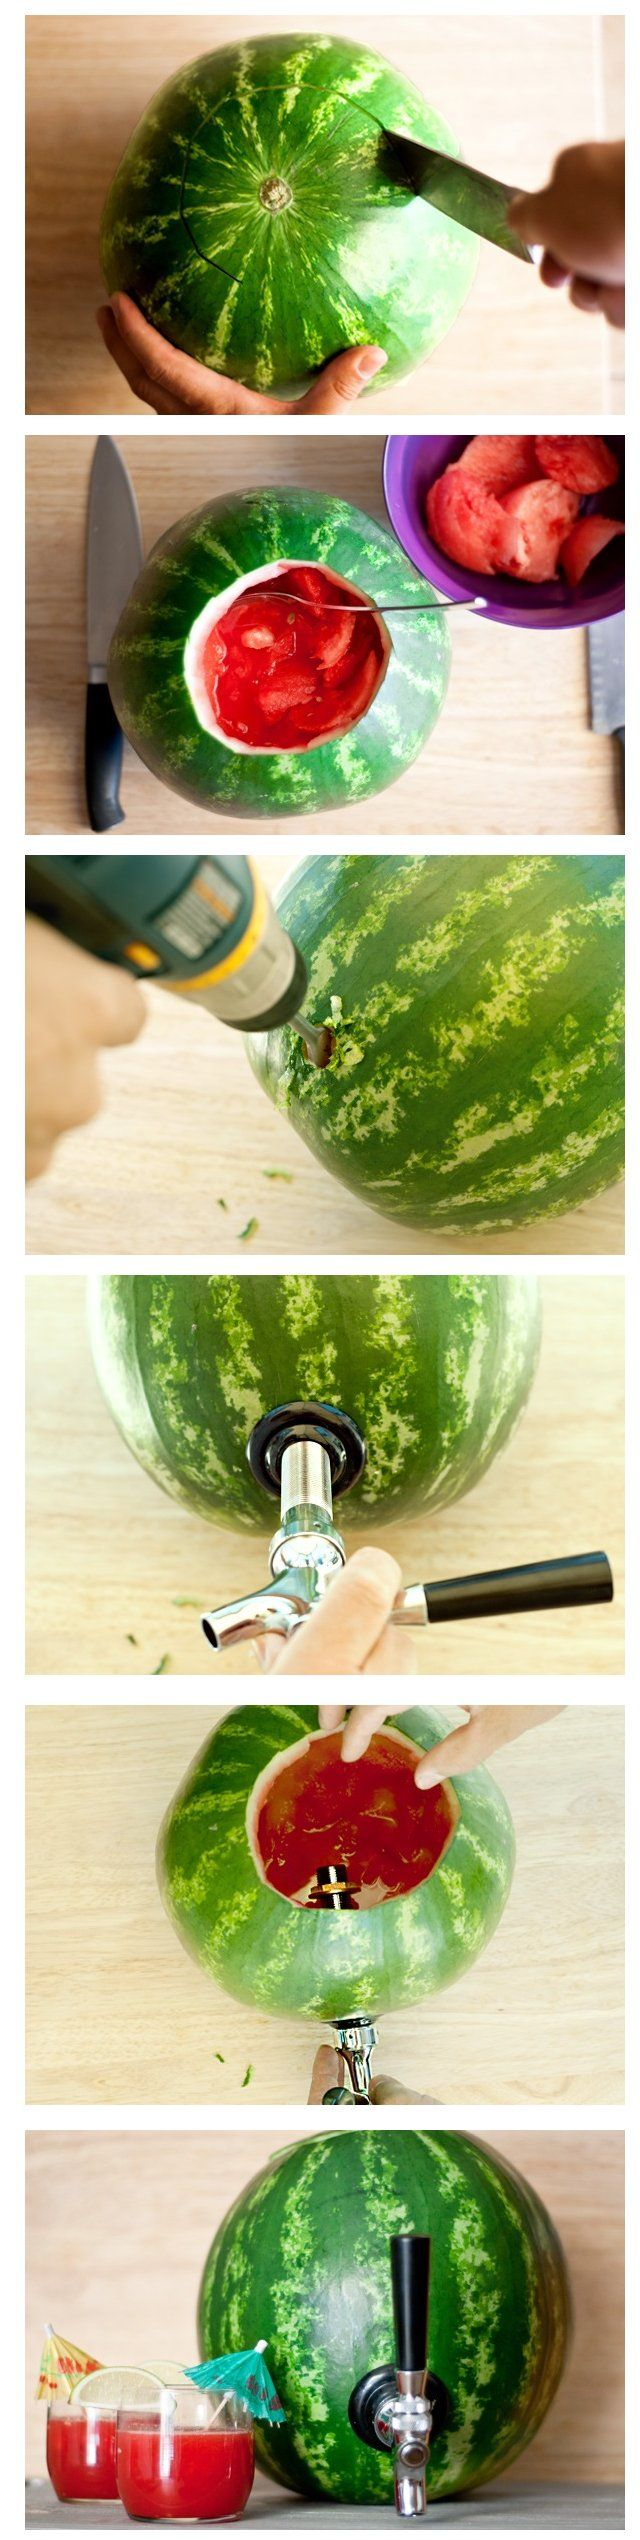 Easy to make DIY Watermelon Drink Dispenser-saved the spouts from broken containers for this;)